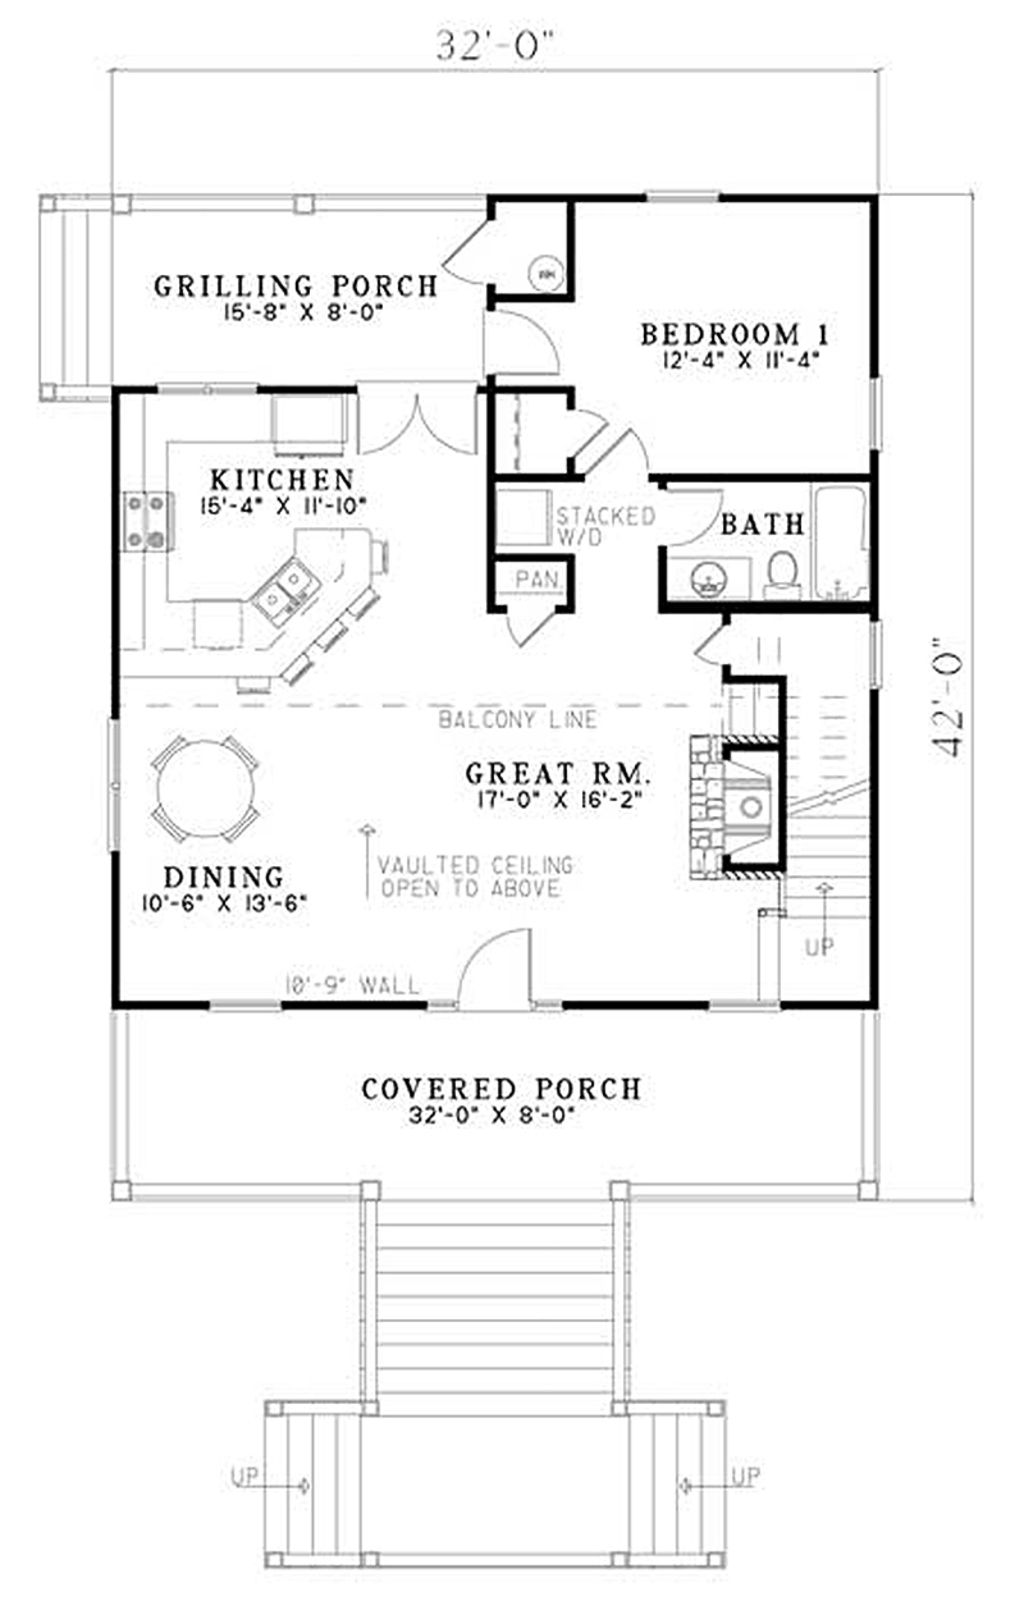 Cabin style house plan 2 beds 2 baths 1400 sq ft plan for 1400 square feet house plans